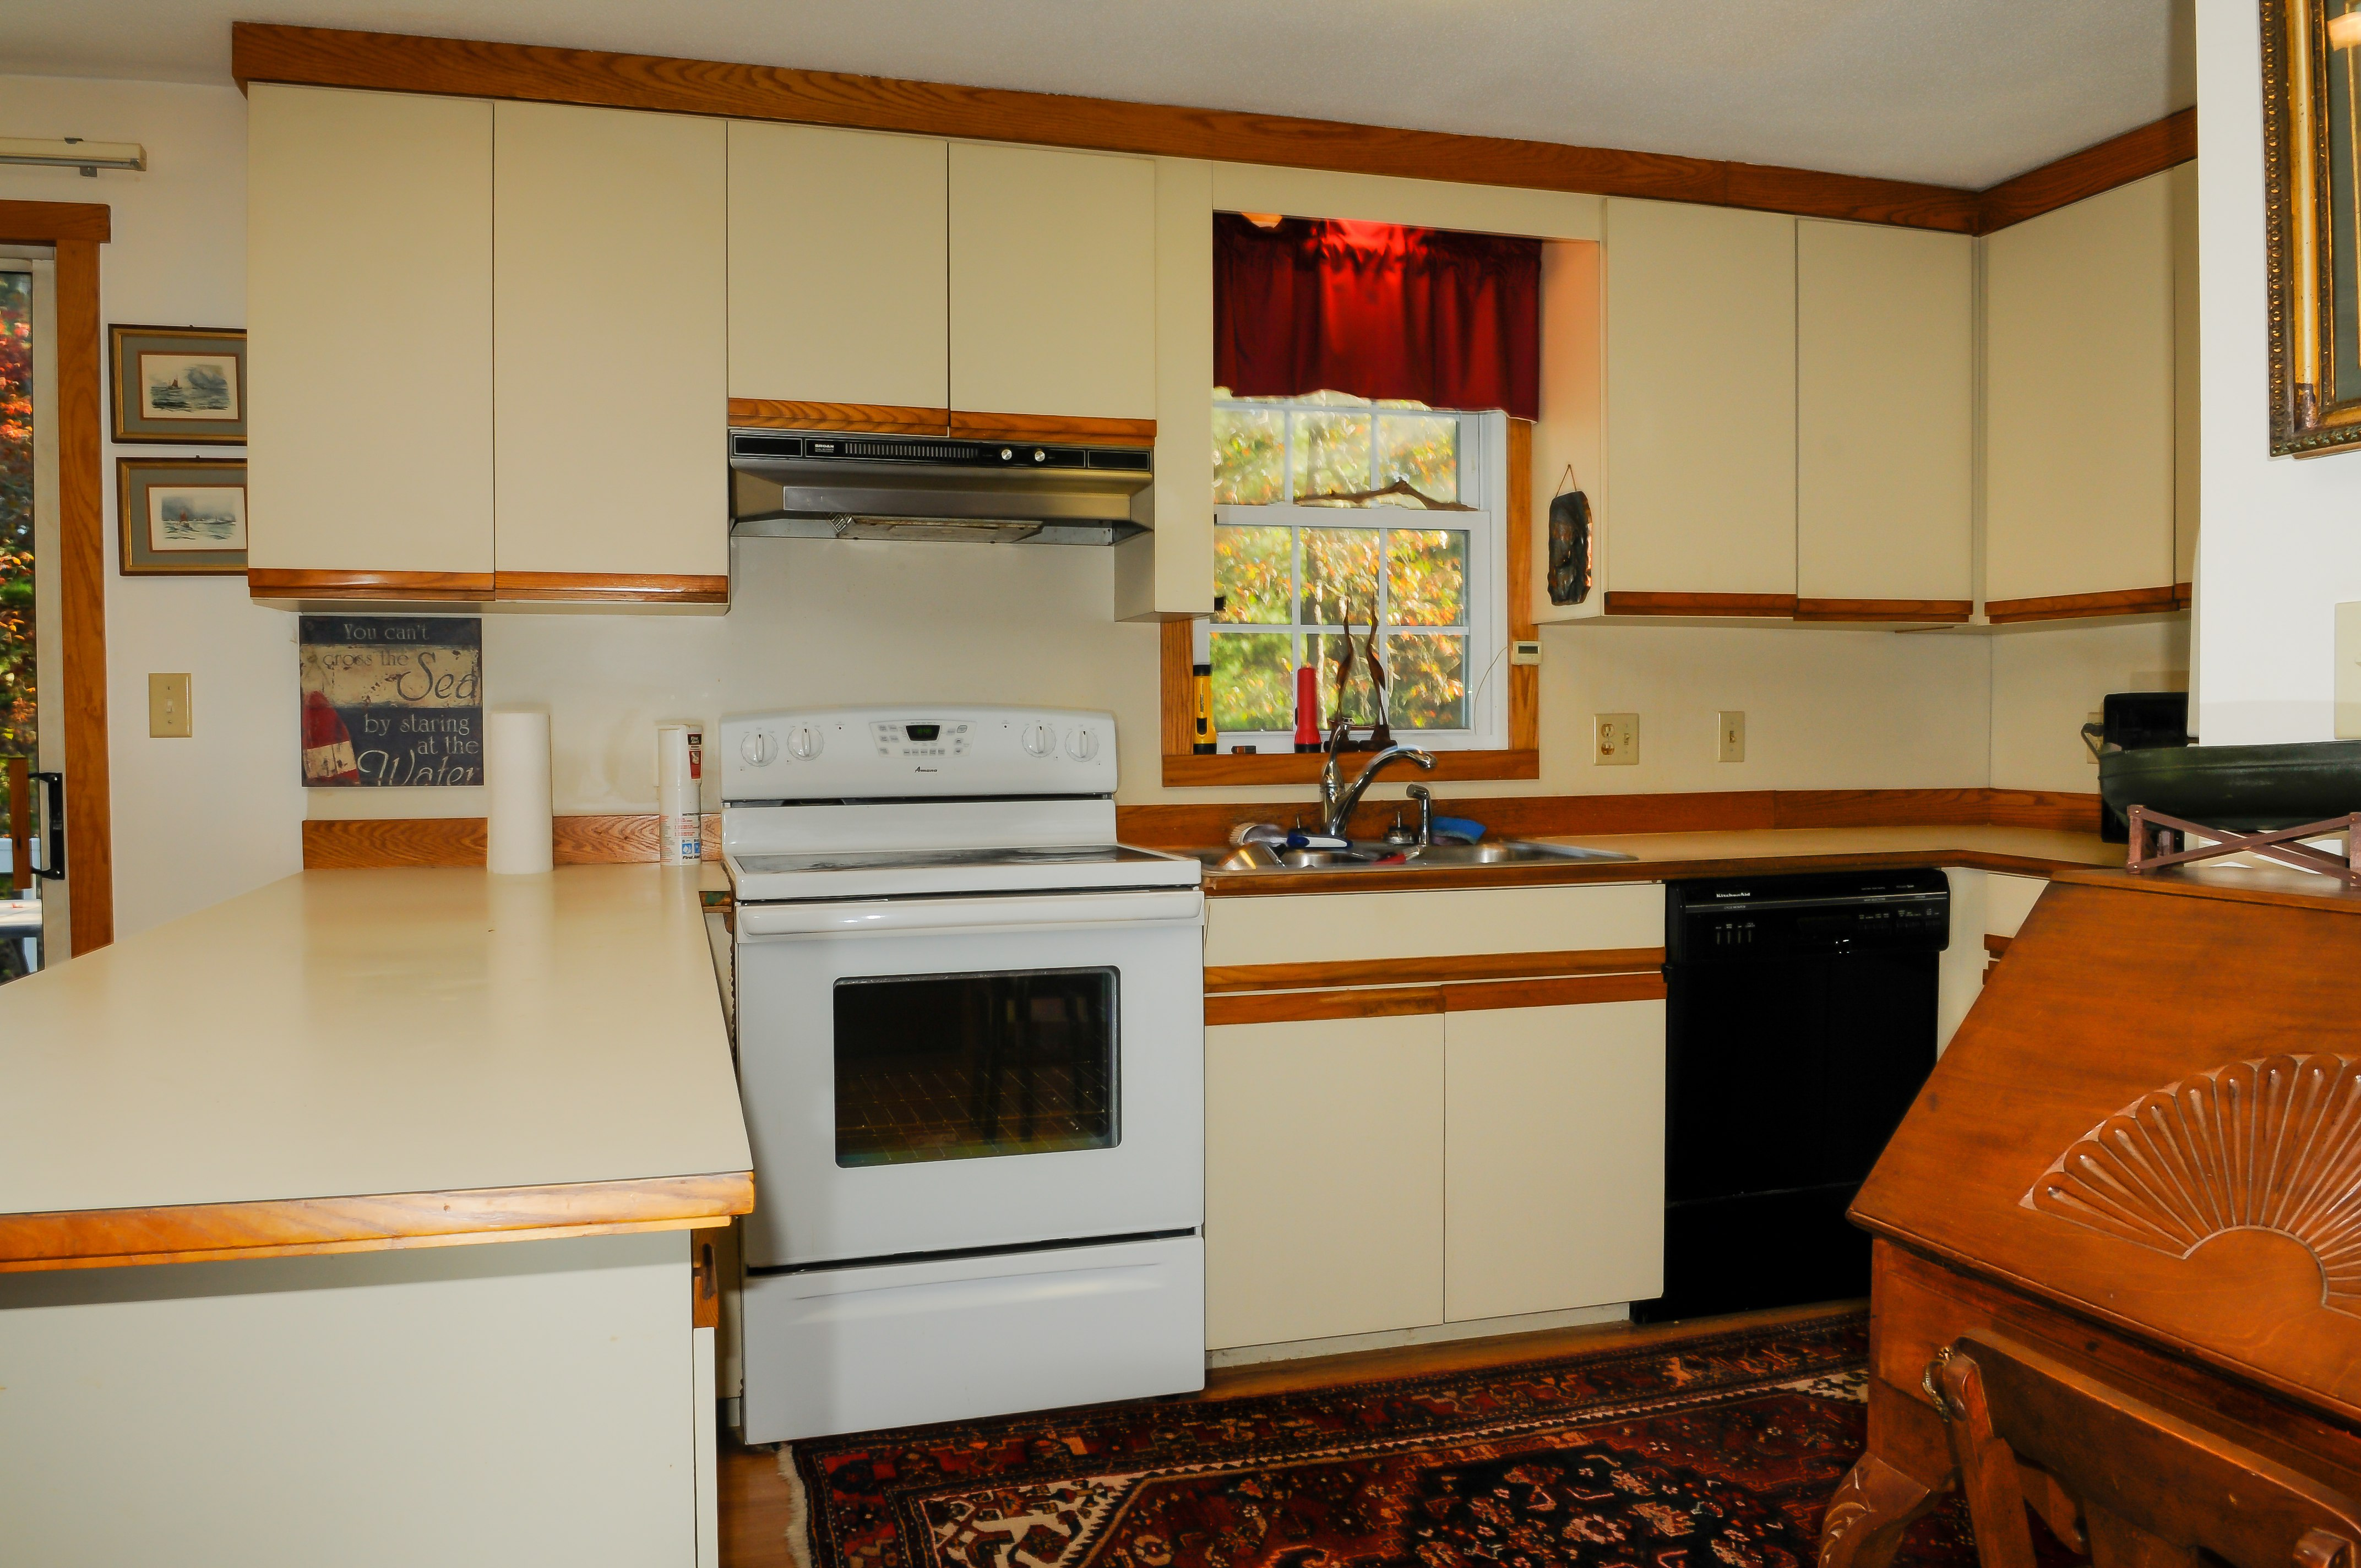 cabinet refacing kitchen cabinets refacing cabinet refacing Cabinet Refacing blank